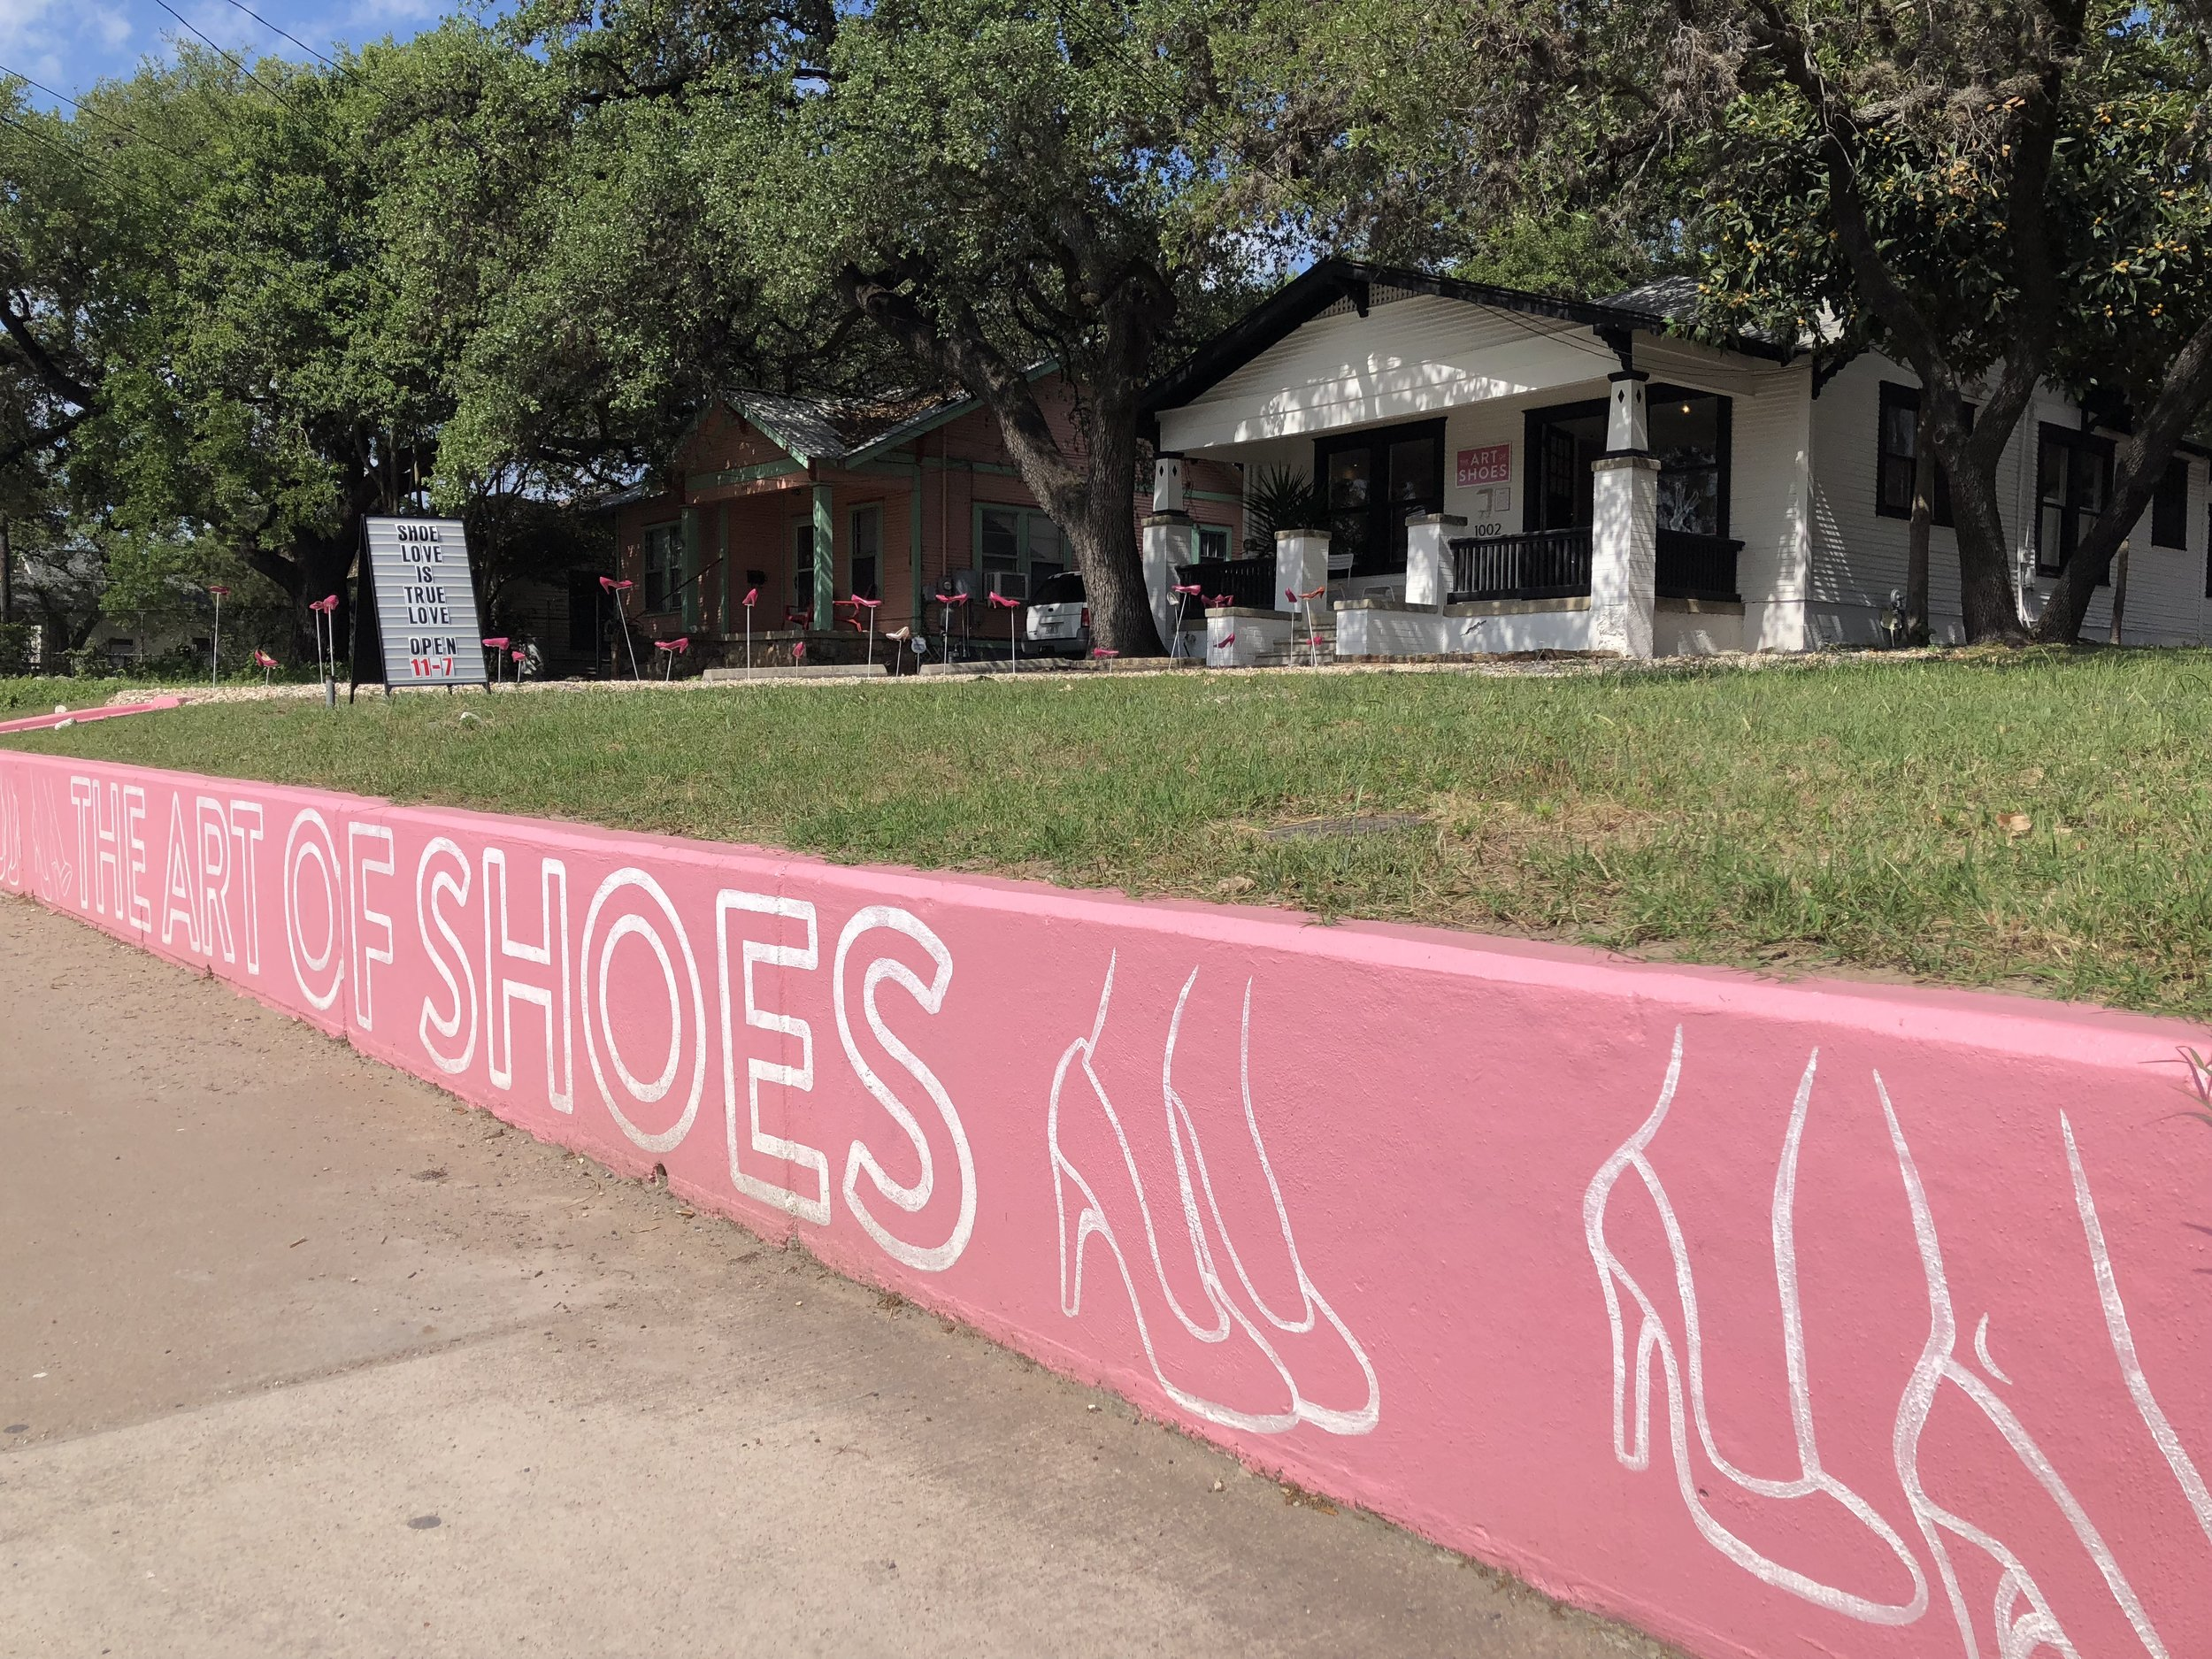 A little glimpse at the fun South Austin shop, Art of Shoes